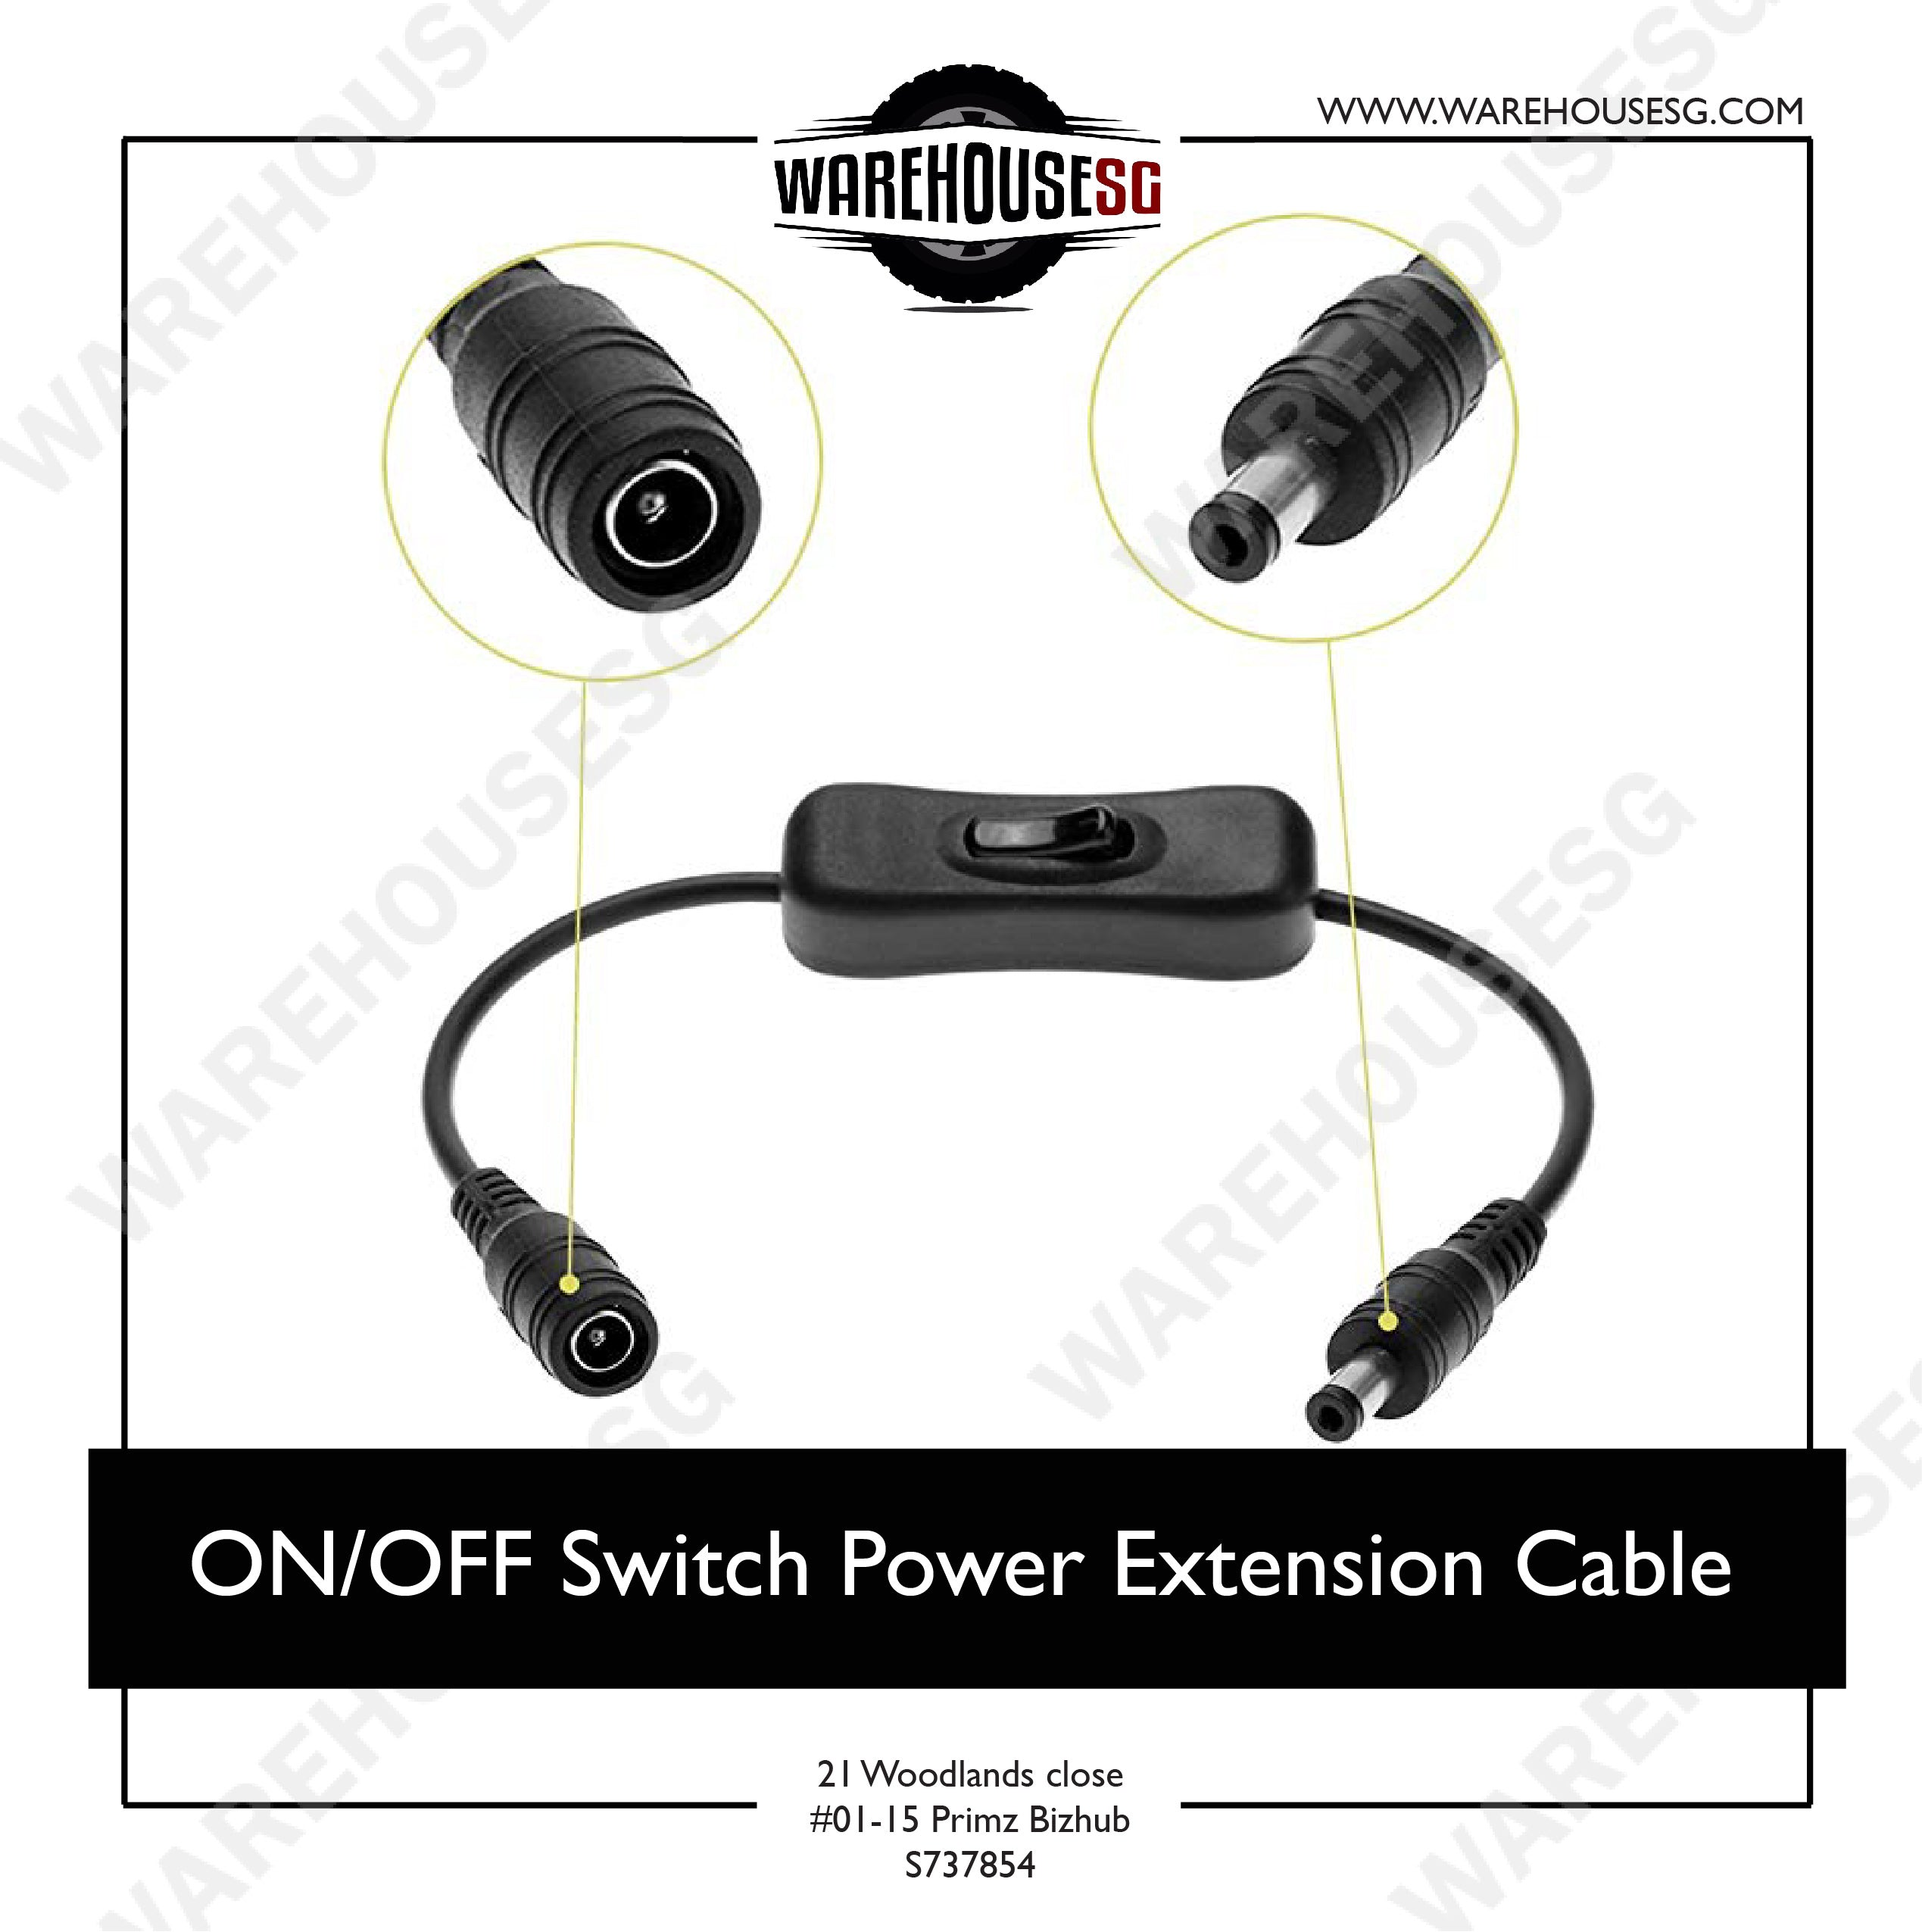 ON/OFF Switch Power Extension Cable